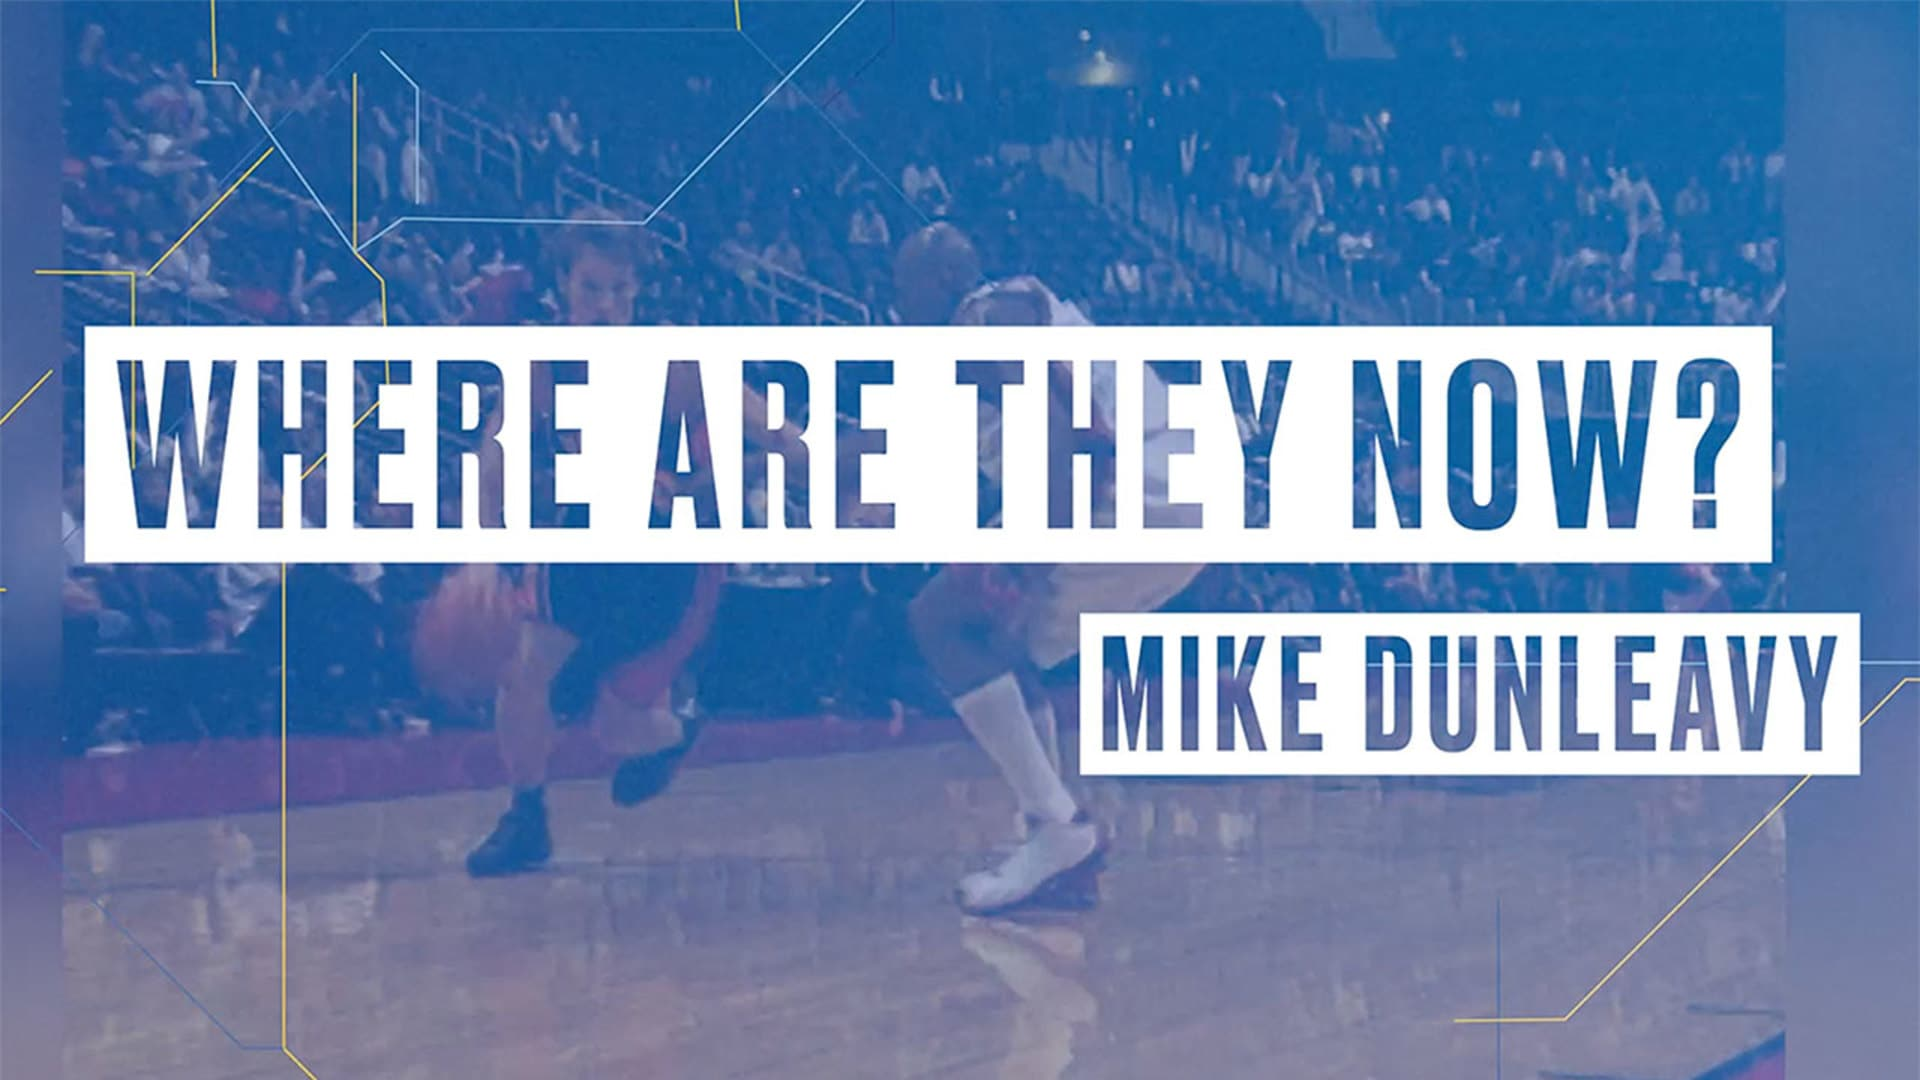 Where Are They Now featuring Mike Dunleavy